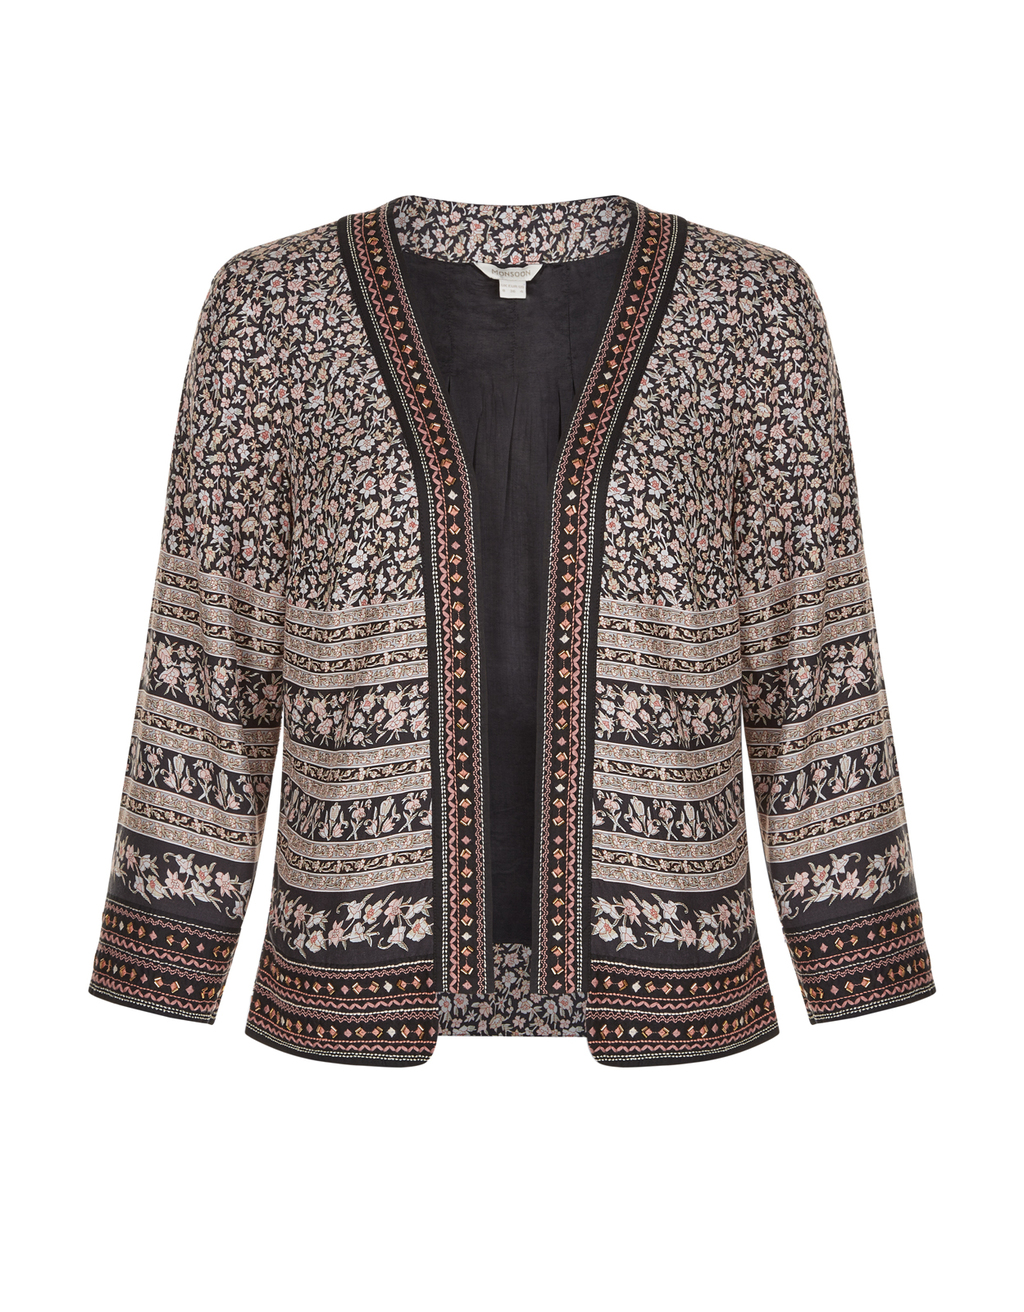 Lucie Print Jacket - collar: round collar/collarless; style: boxy; predominant colour: blush; secondary colour: black; occasions: evening; length: standard; fit: straight cut (boxy); fibres: cotton - mix; sleeve length: long sleeve; sleeve style: standard; texture group: crepes; collar break: low/open; pattern type: fabric; pattern: patterned/print; embellishment: beading; multicoloured: multicoloured; season: a/w 2016; wardrobe: event; embellishment location: all over